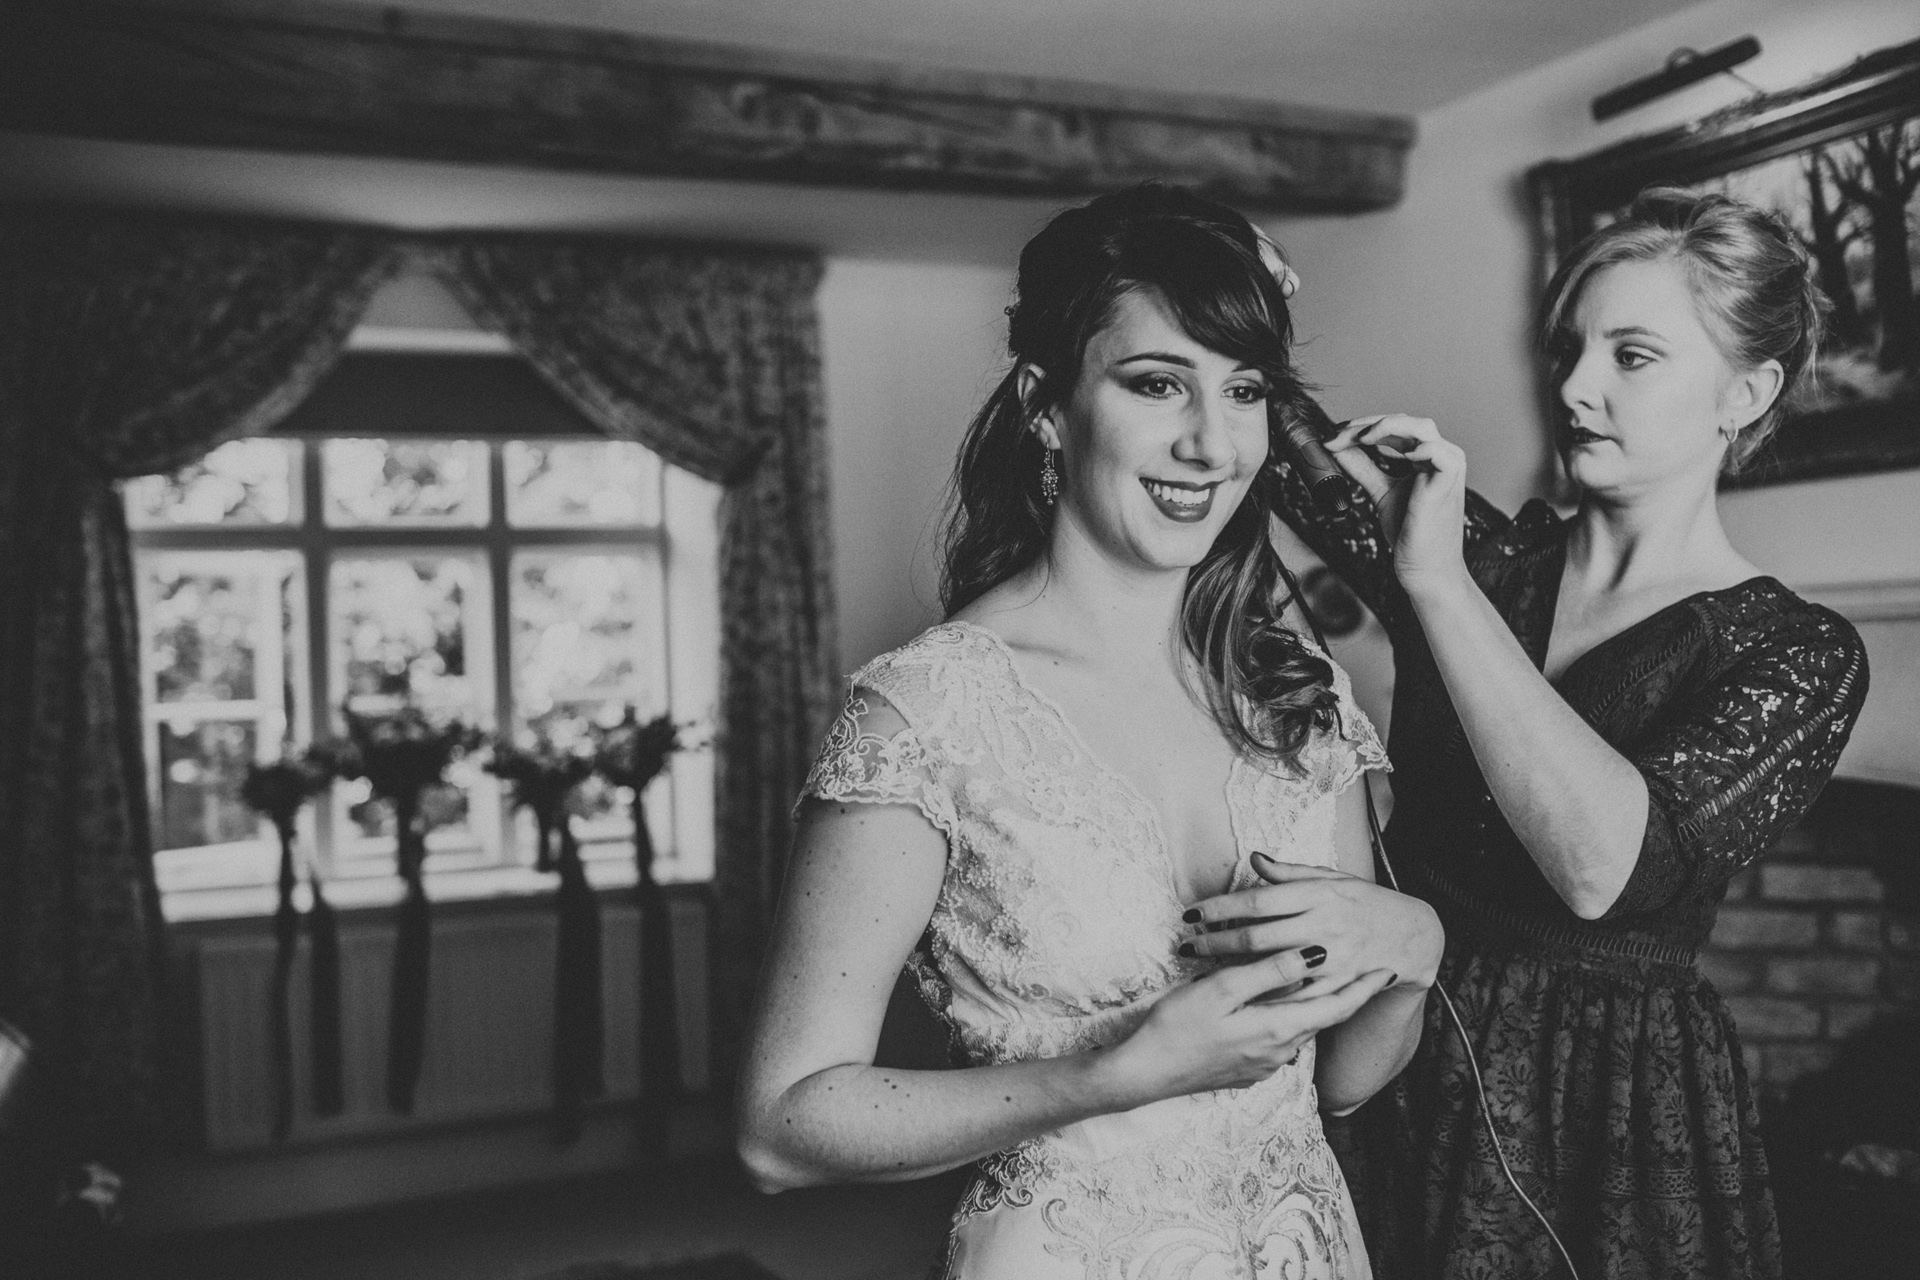 The bride looking excited about the day ahead. Photograph in black and white.